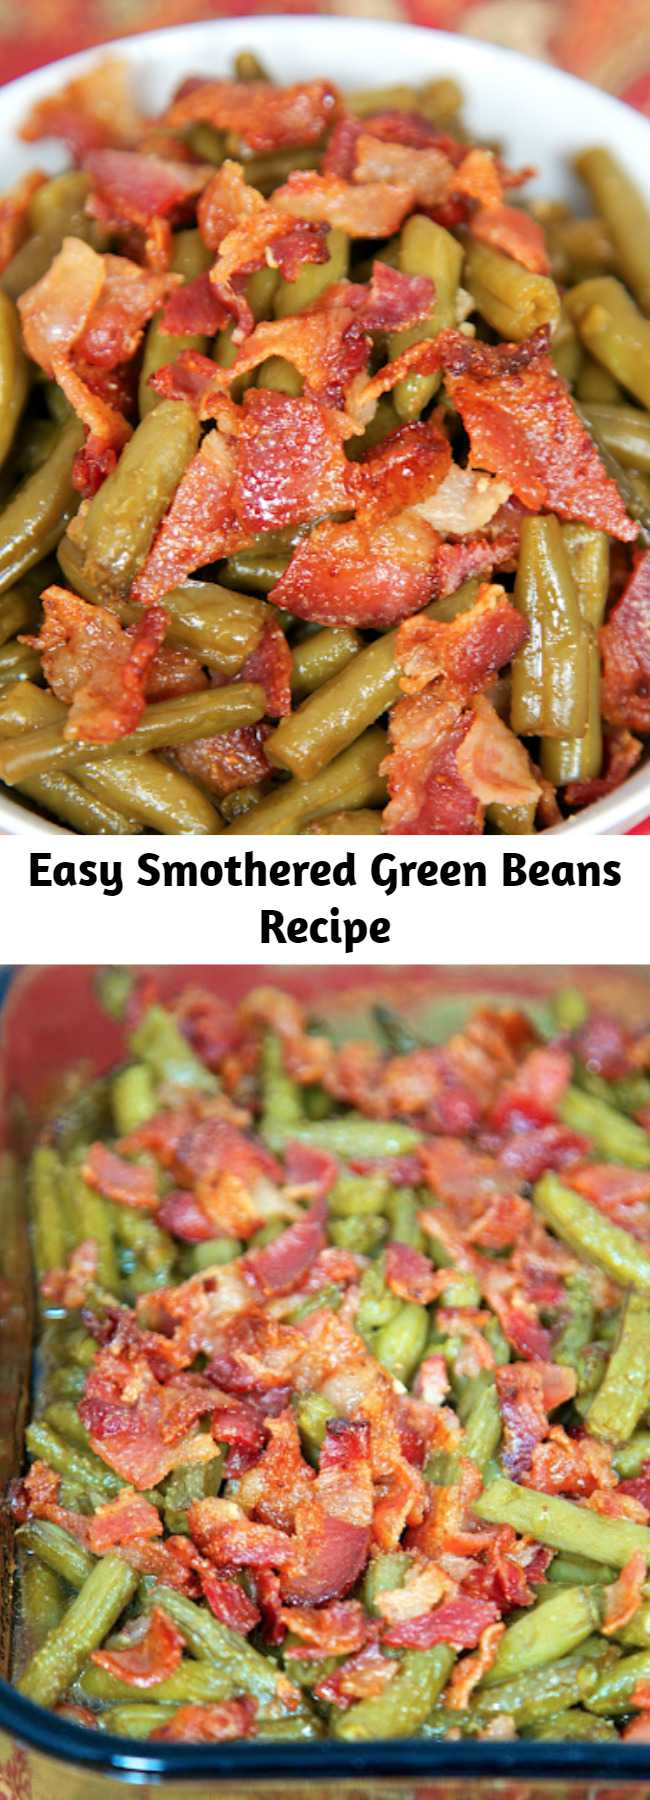 Easy Smothered Green Beans Recipe - Canned green beans baked in bacon, brown sugar, butter, soy sauce, and garlic. This is the most requested green bean recipe in our house. Everybody gets seconds. SO good!! Great for a potluck. Everyone asks for the recipe! Super easy to make.